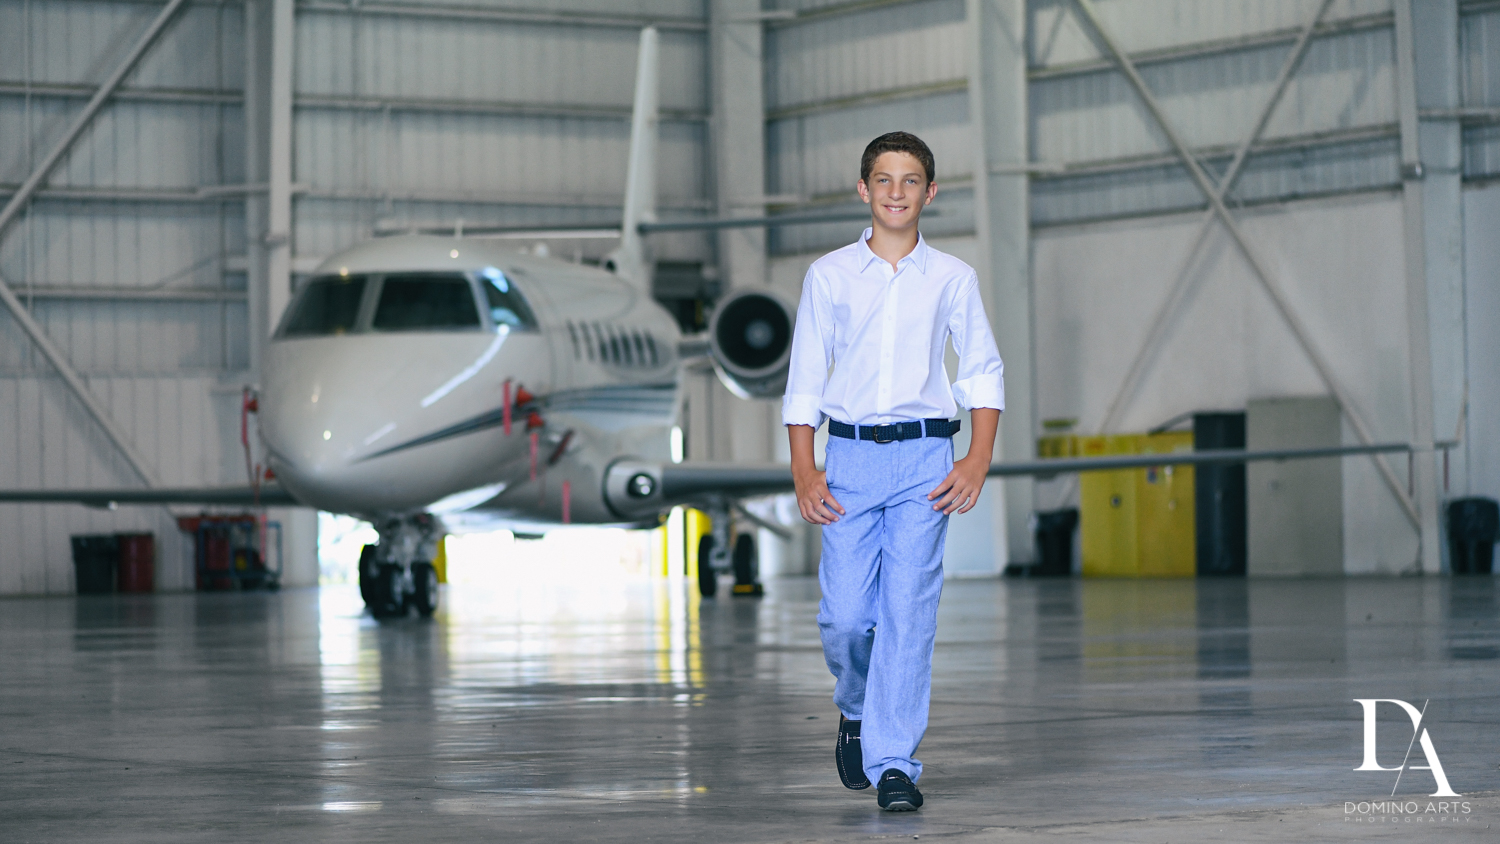 Cool Pre Mitzvah Photo session at Airport